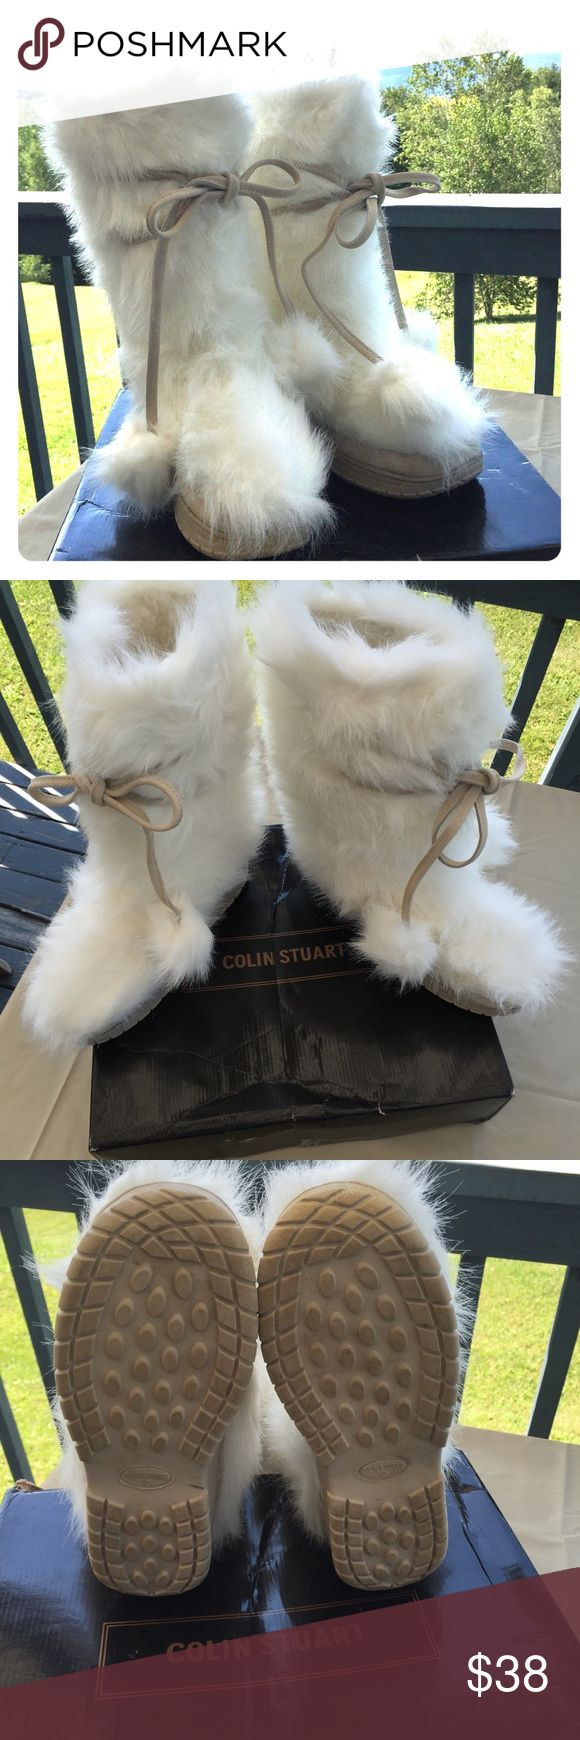 Colin Stuart Fuzzy Boots White Faux Fur Colin Stuart boots ladies 10. Super Warm & Cozy boots with fluffy fuzzy lining. Decorative white Pom Pom ties. They look amazing with leggings or skinny jeans!!! Purchased from Victoria's Secret. Excellent for winter! Great condition!  Colin Stuart Shoes Winter & Rain Boots